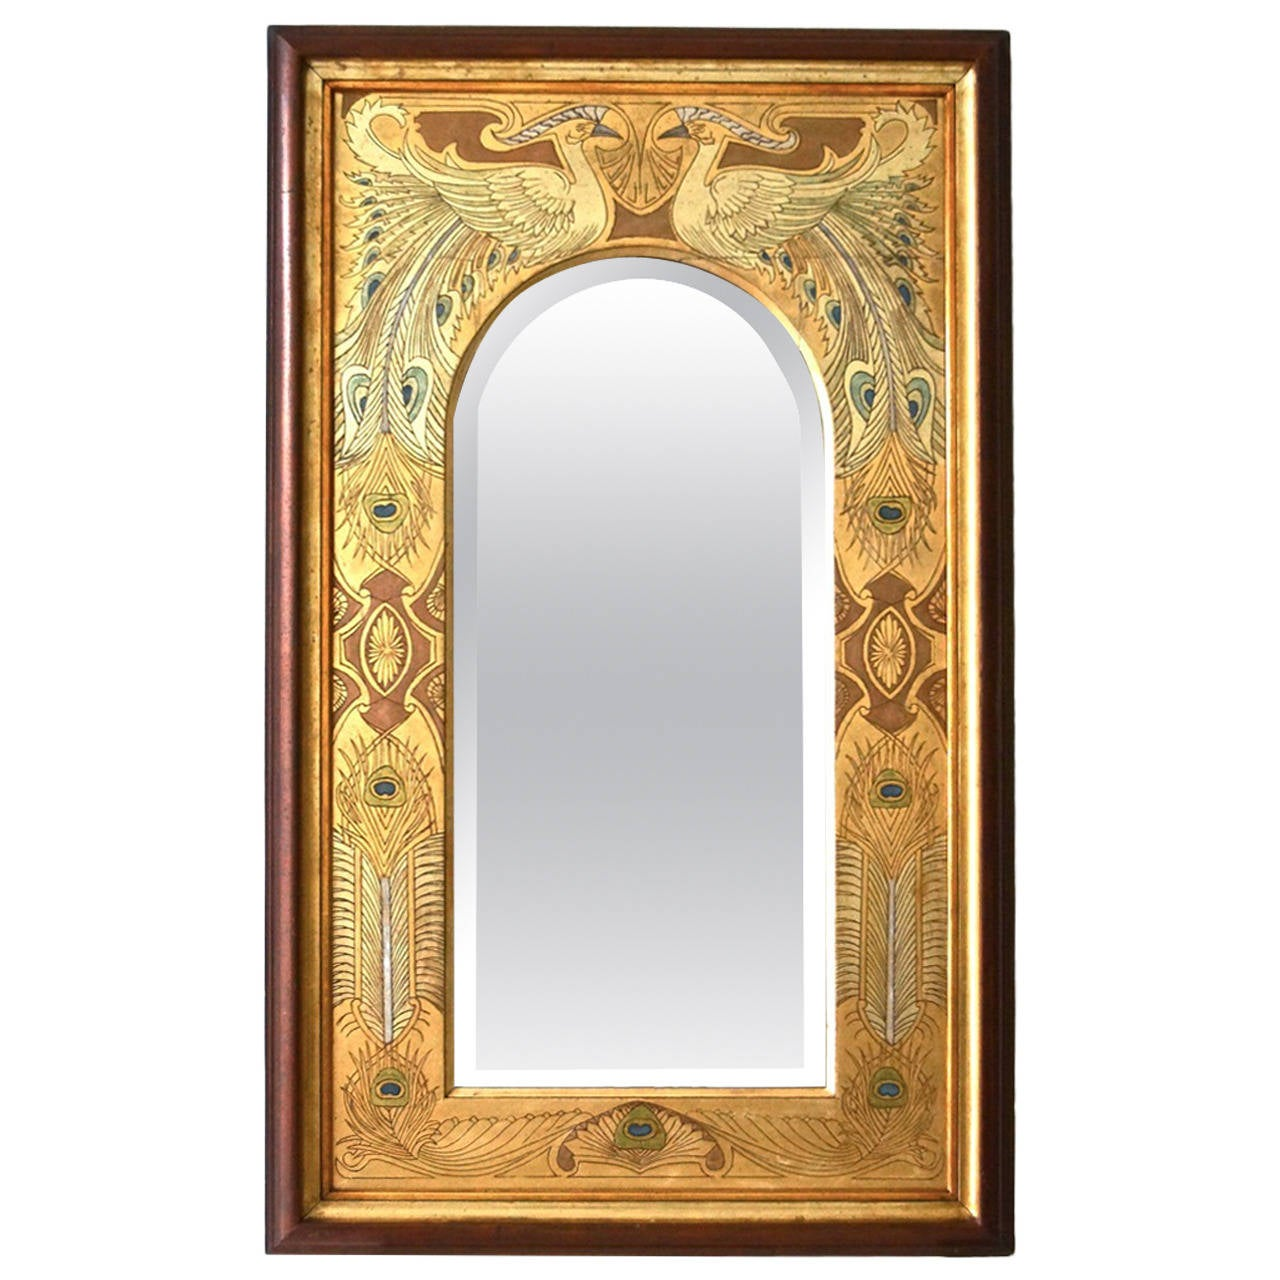 Spectacular art nouveau mirror with peacocks for sale at for Mirrors for sale